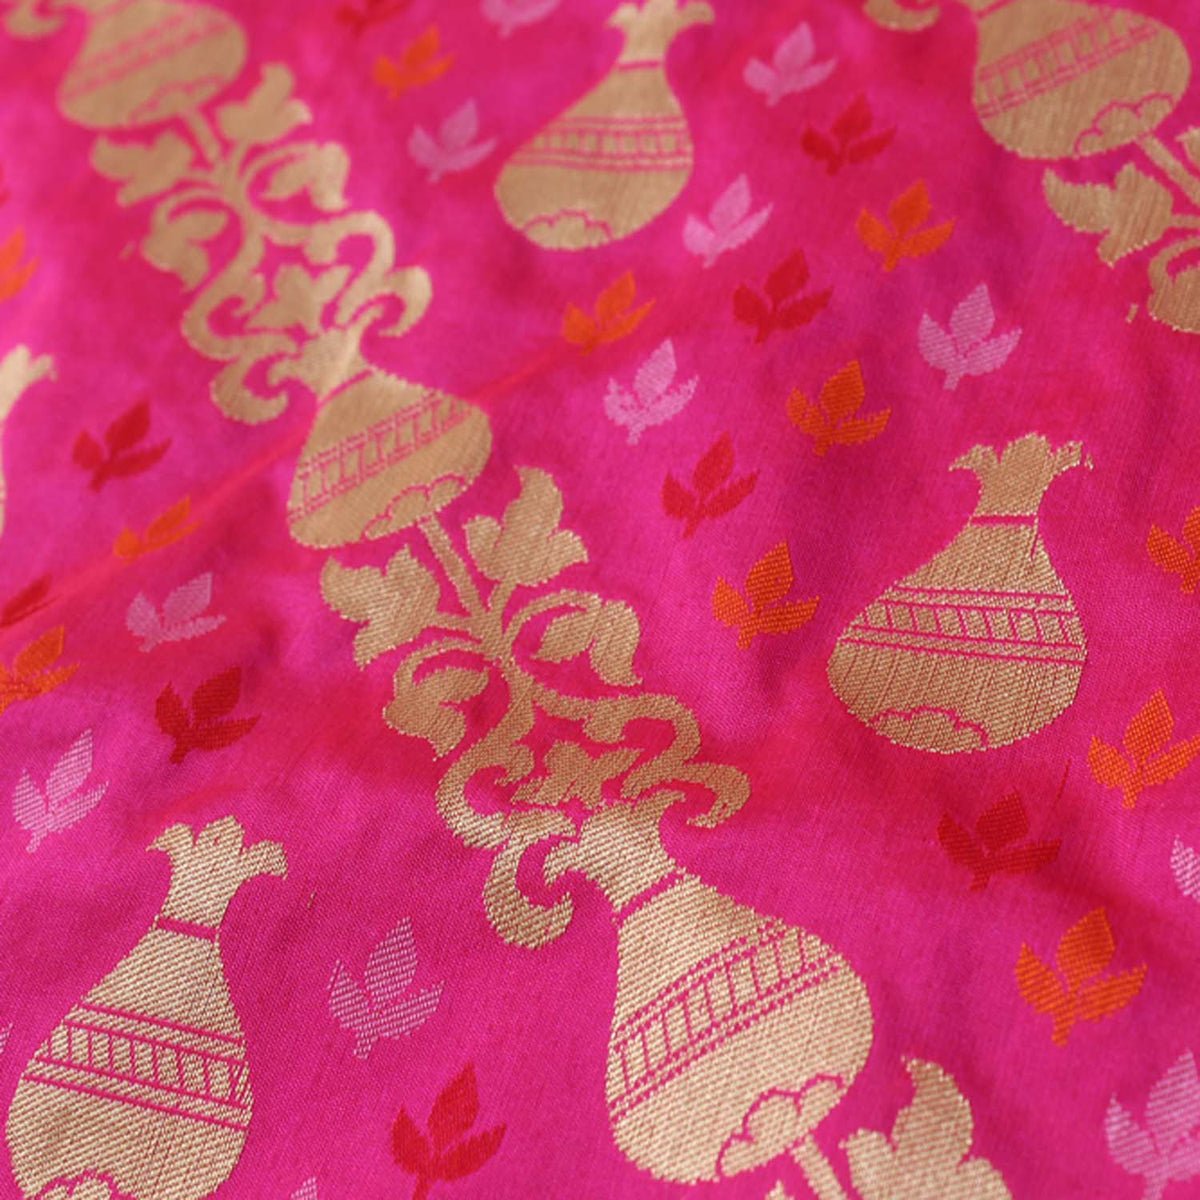 Orange Rose-Pink Pure Katan Silk Banarasi Handloom Dupatta - Tilfi